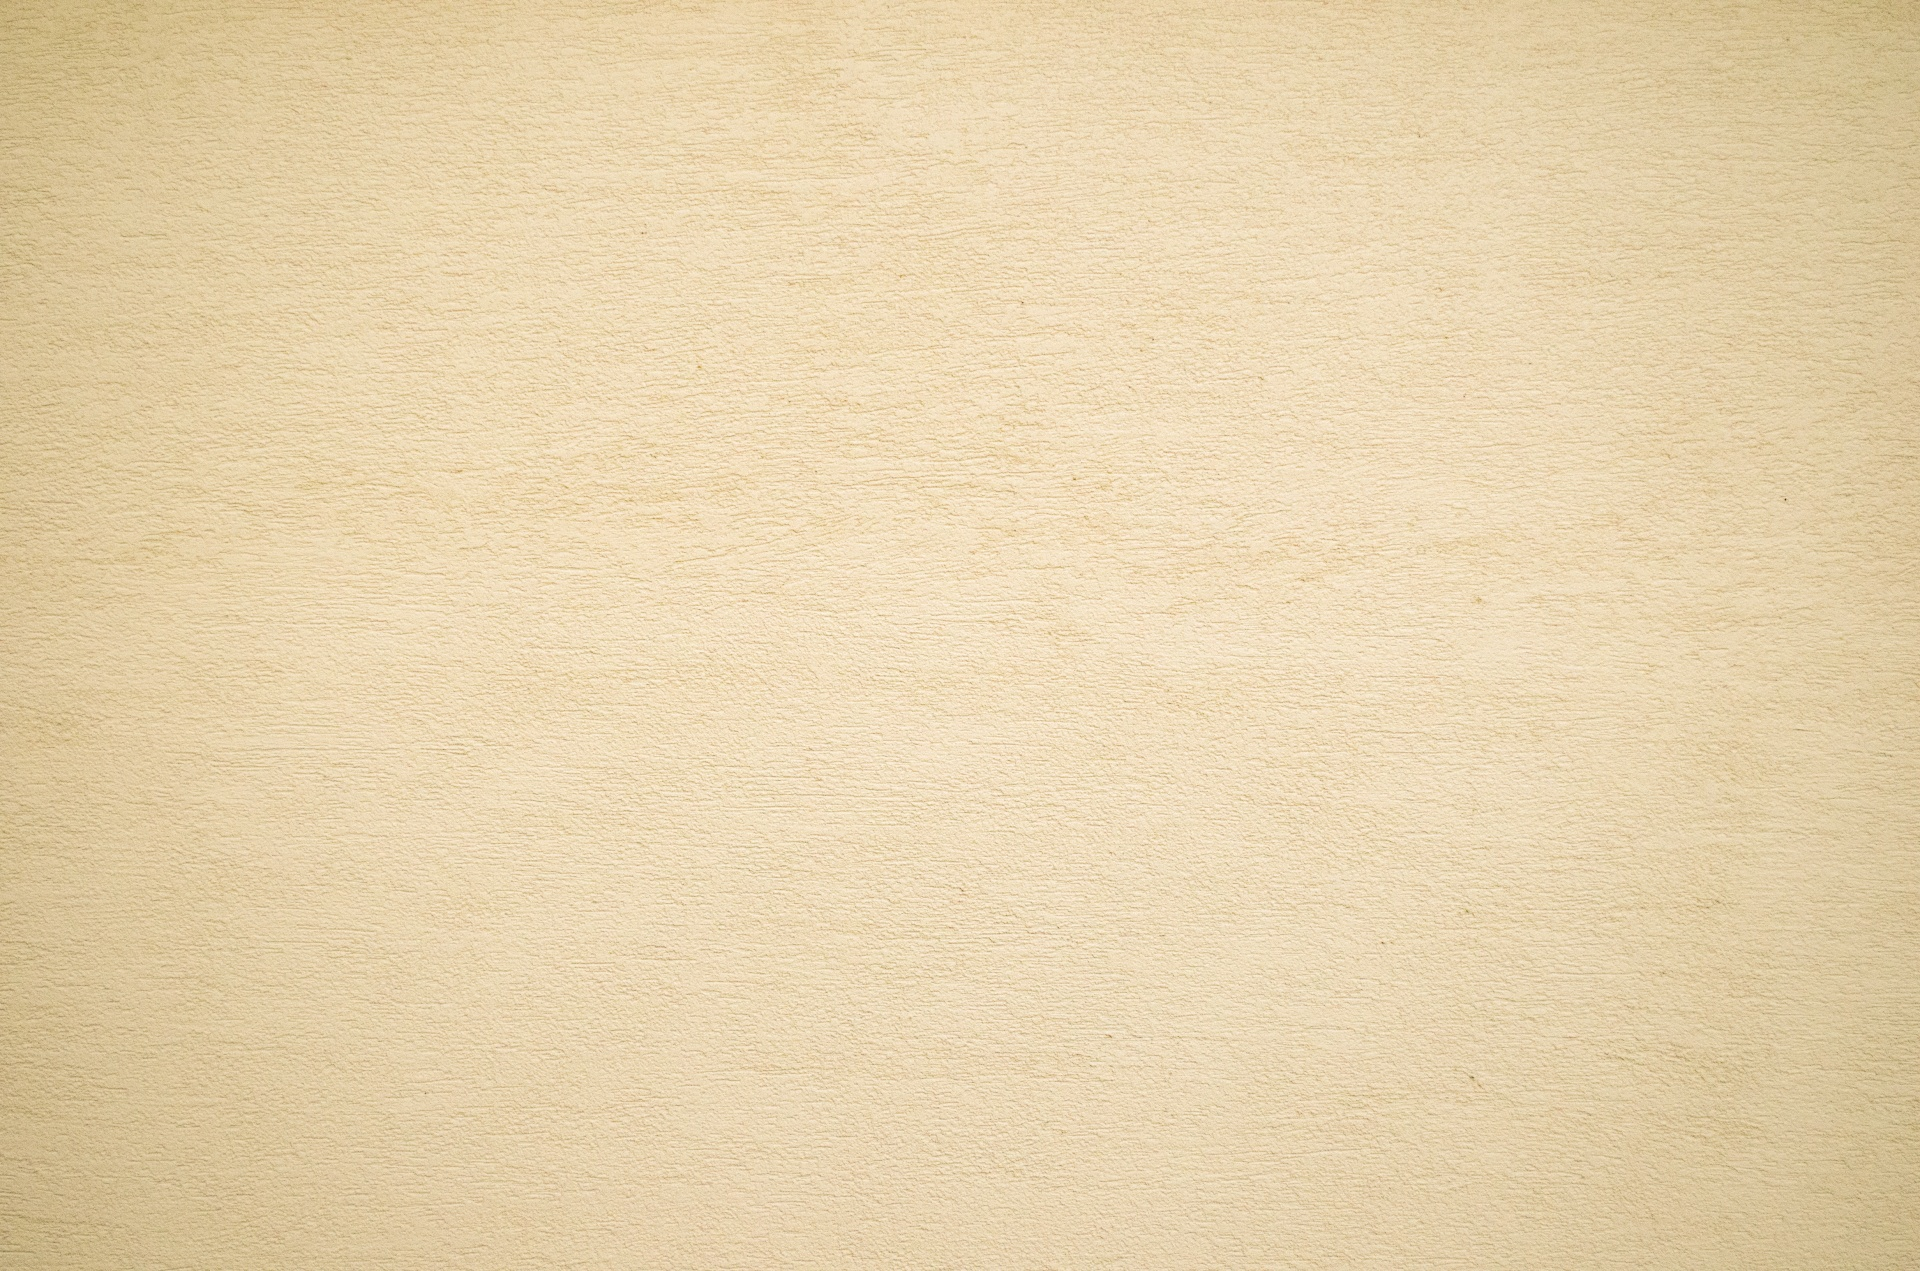 Wall Background Free Stock Photo - Public Domain Pictures